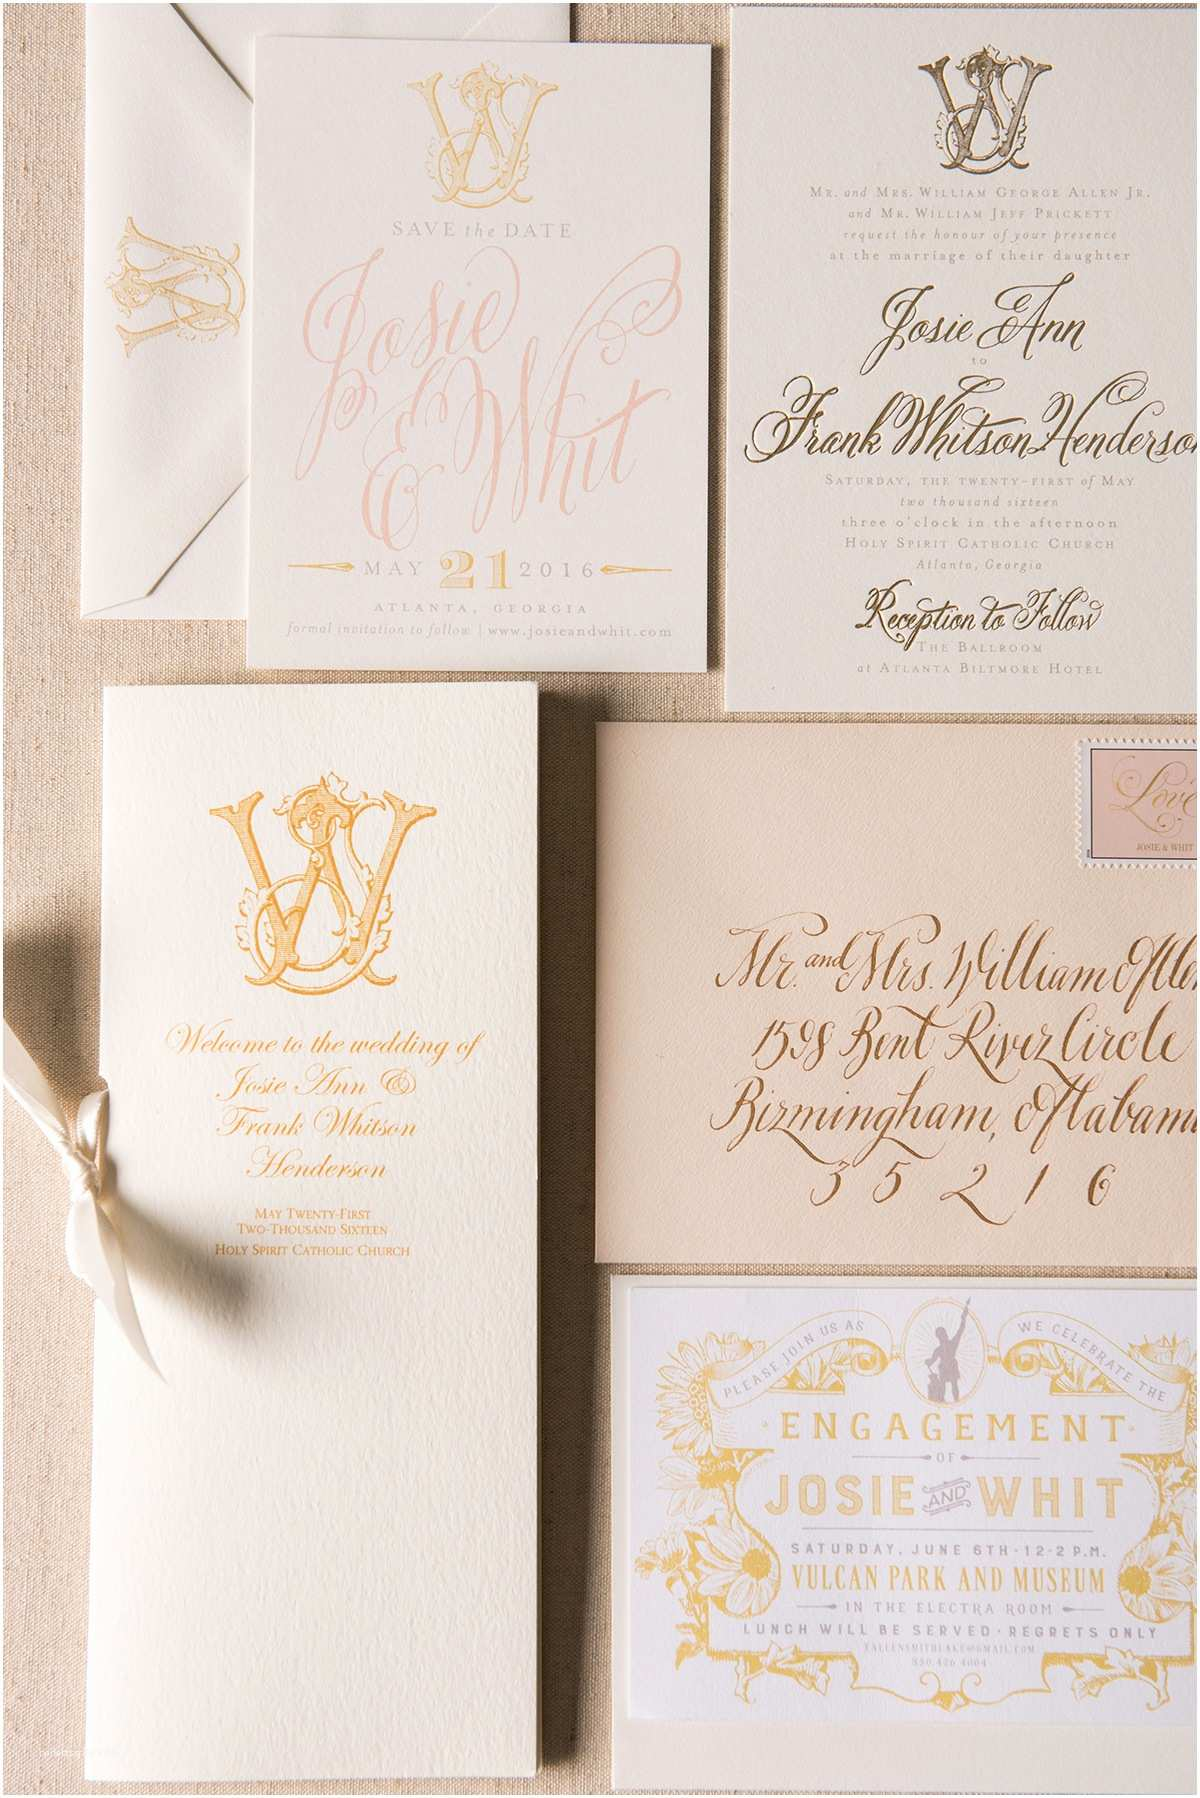 Blush and Gold Wedding Invitations Blush and Gold Wedding Invitations Elizabeth Anne